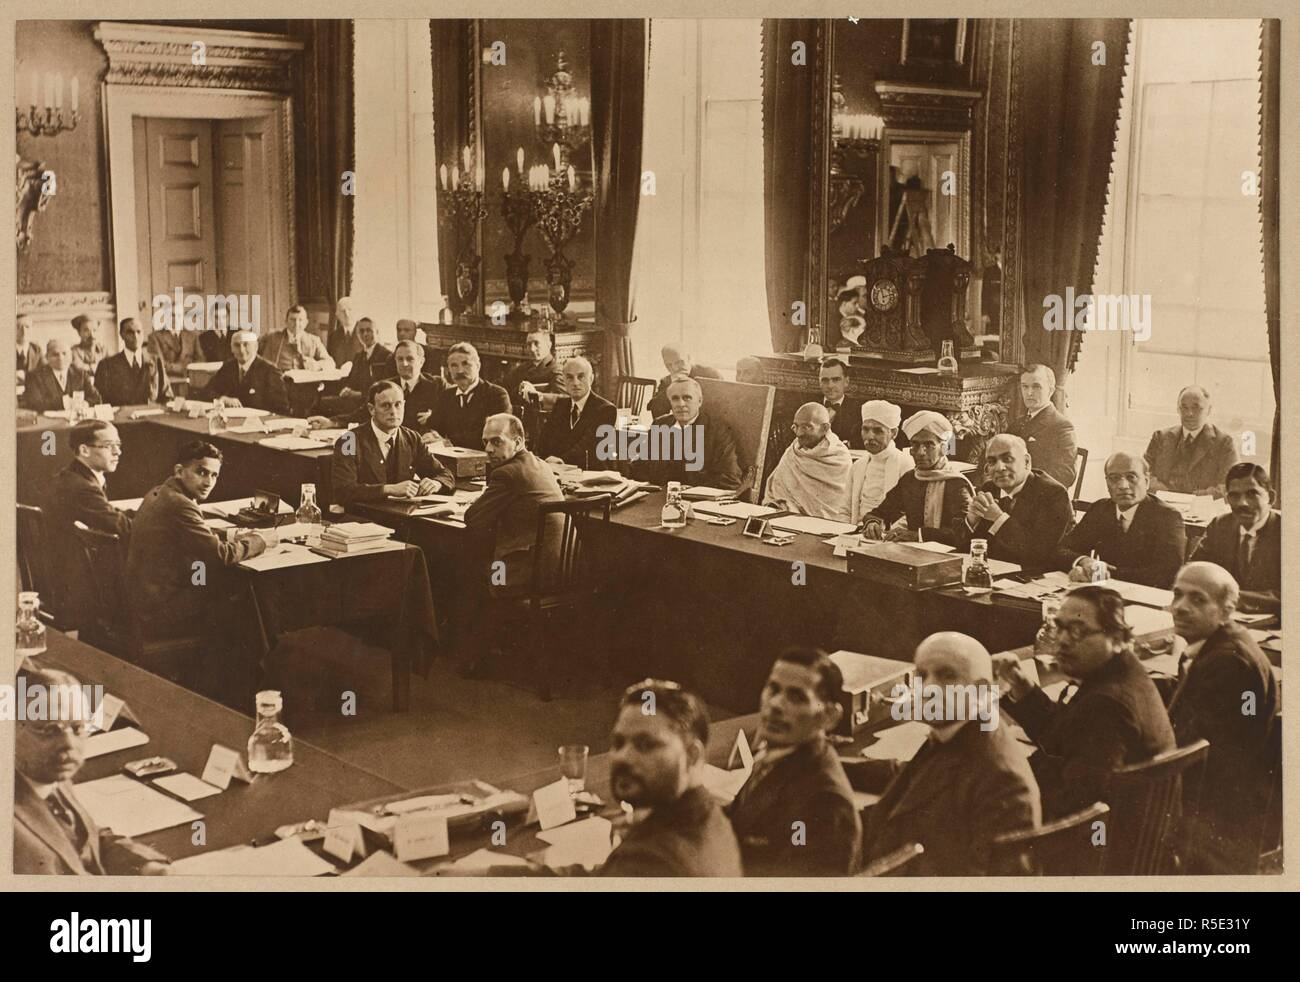 Delegates at the second session of the Indian Round Table Conference, St. James's Palace, London. A group portrait of delegates seated at the Chairman's table, British delegates to the left, Indian to the right. From left to right: Lord Pethick-Lawrence; Lord Lothian; Lord Peel; Sir Samuel Hoare; Lord Sankey; Mahatma Gandhi; Madan Mohan Malaviya; --; Sir Tej Bahadur Sapru. The Round Table Conference (Second Session), St James' Palace, London. Sep. 1931. Photograph. Source: Photo 13/(1). Author: UNKNOWN. Stock Photo